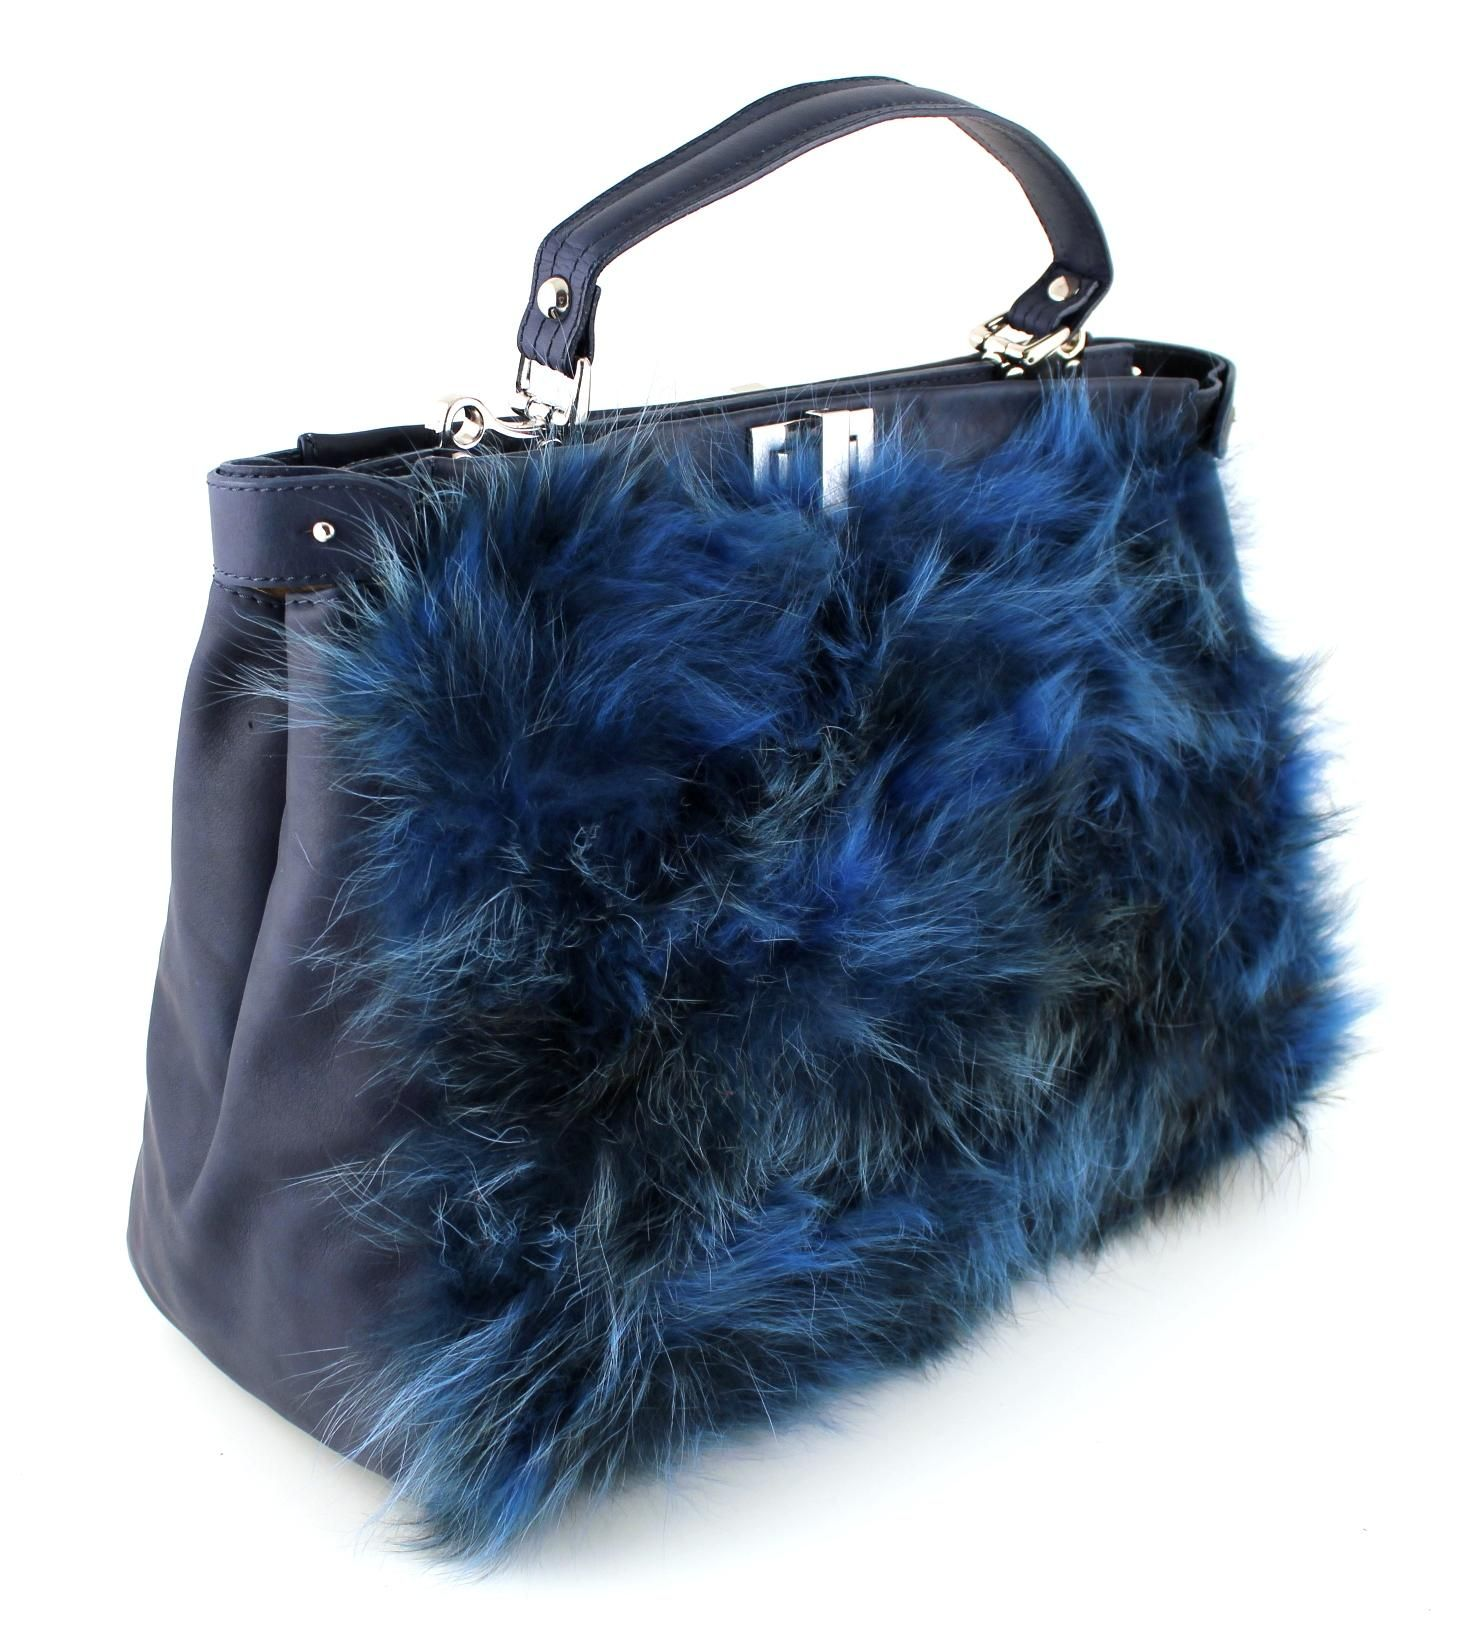 2013-2014 Autumn Winter Collection Leather Handbag Tote with Fur